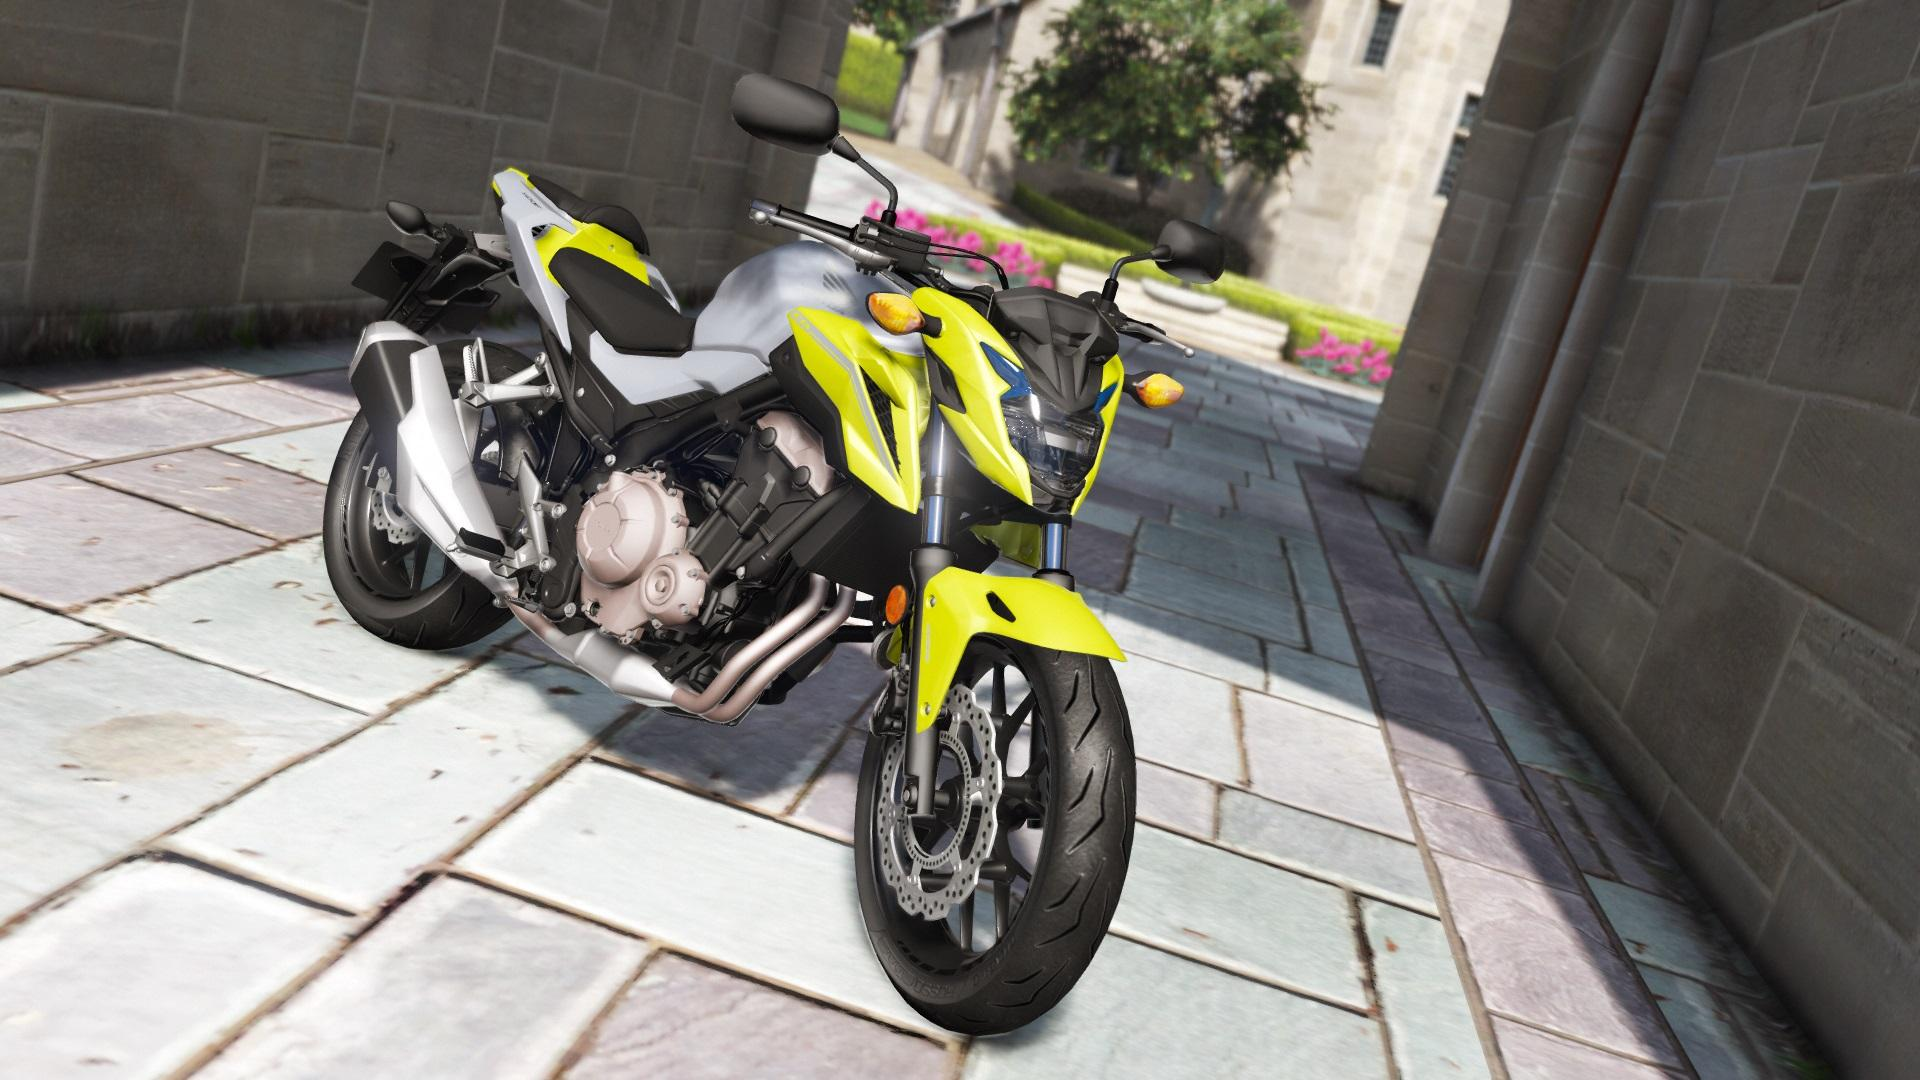 2018 honda cb500f addons tuning gta5. Black Bedroom Furniture Sets. Home Design Ideas